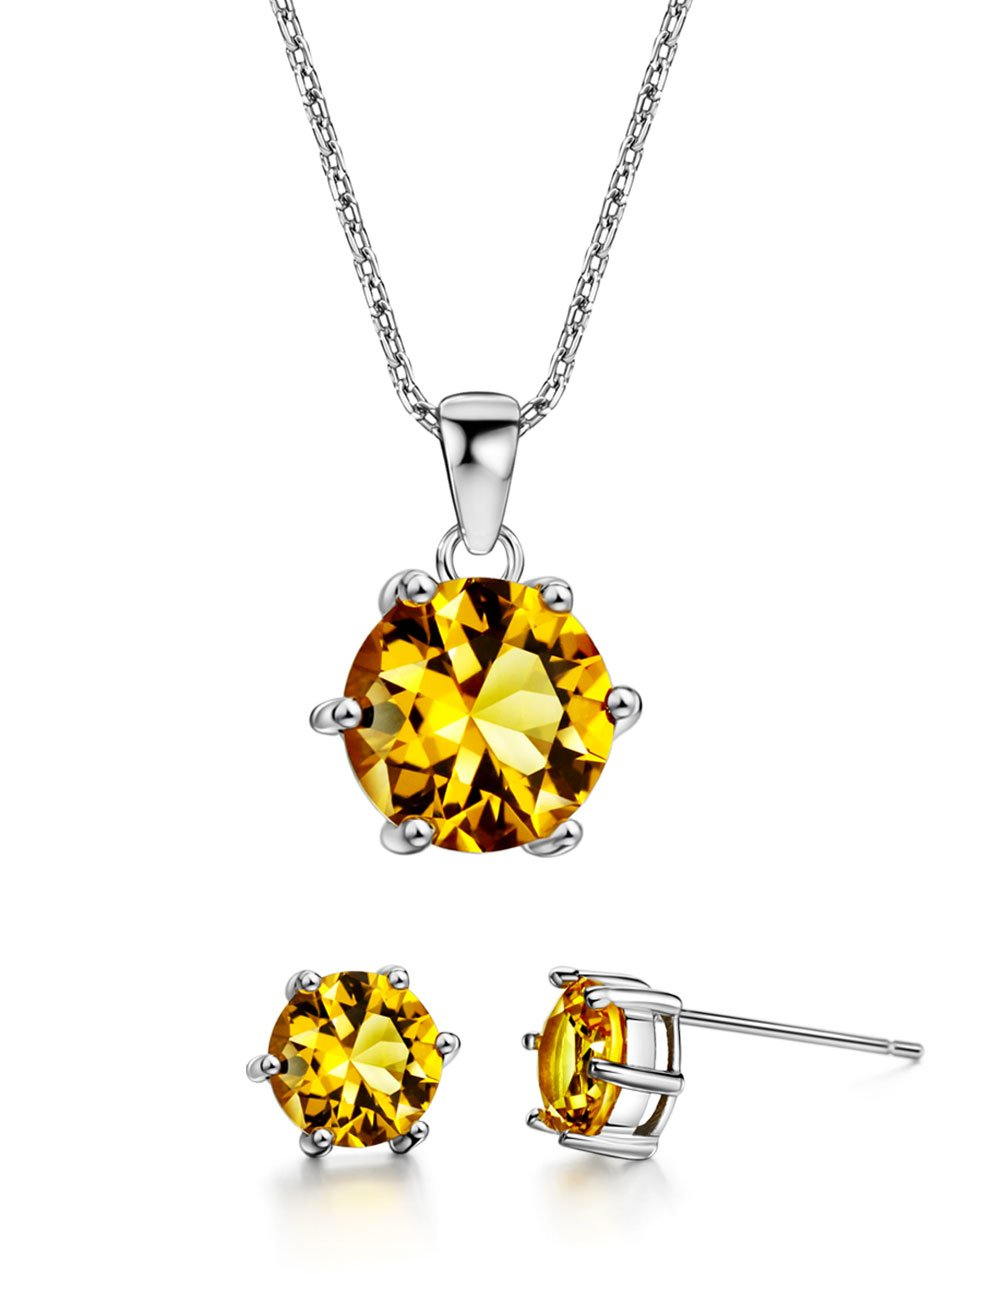 3ct Citrine Jewelry Set Sterling Silver Pendant Necklace Stud Earrings November Birthstone Gemstone Jewelry for Women